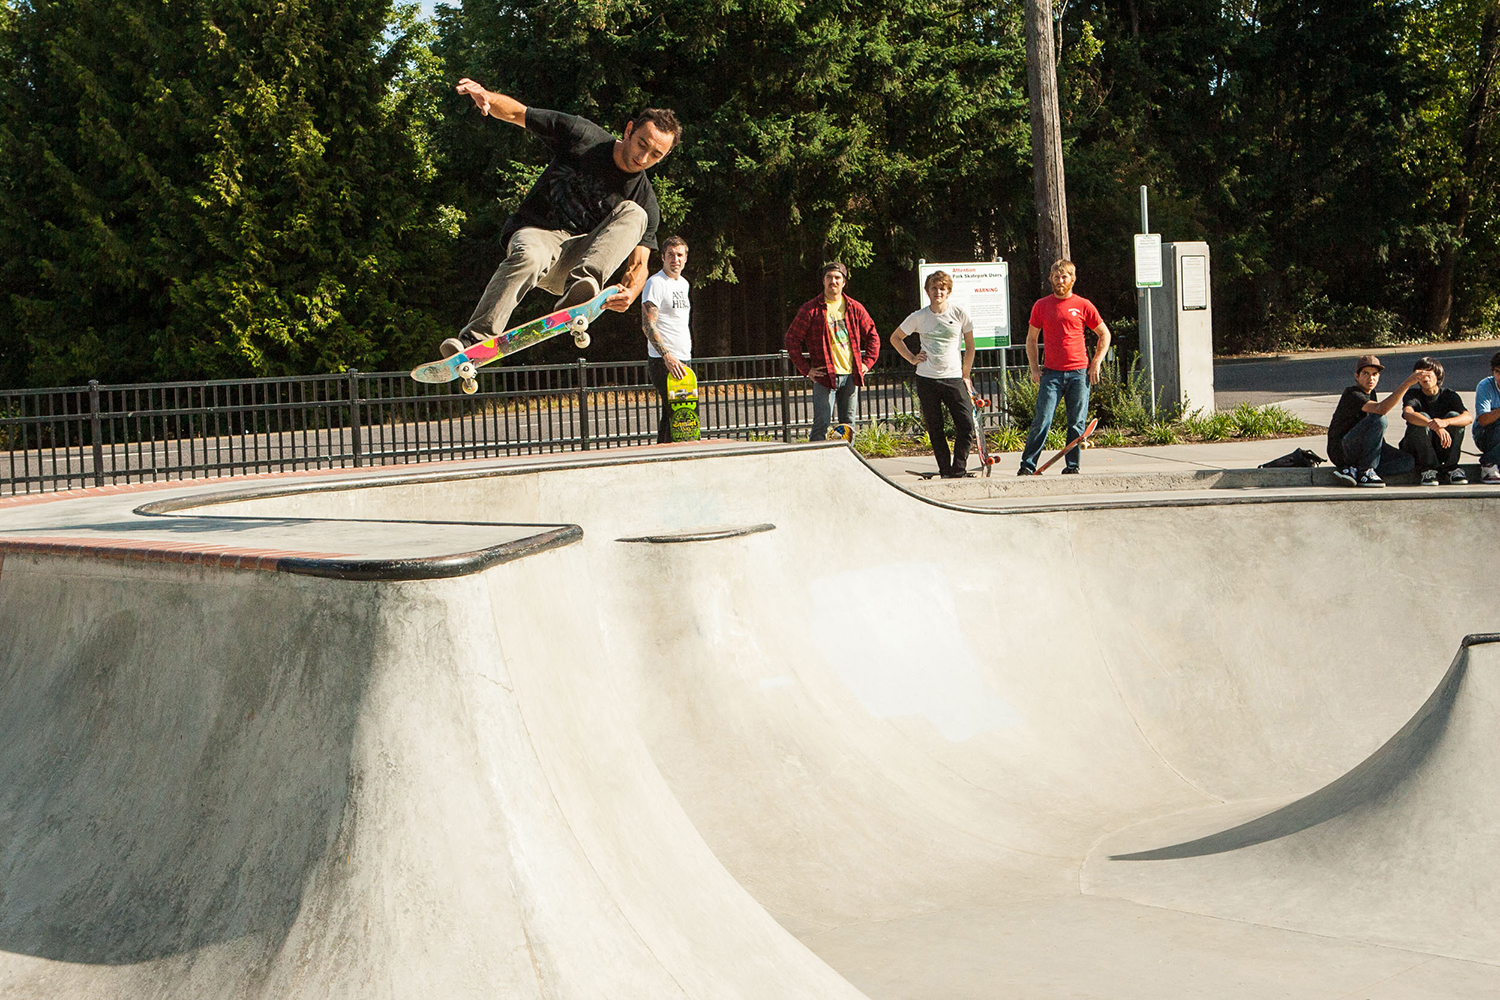 Professional skater Daniel Cardone floats above the lip of the Holly Farm Skate Spot.